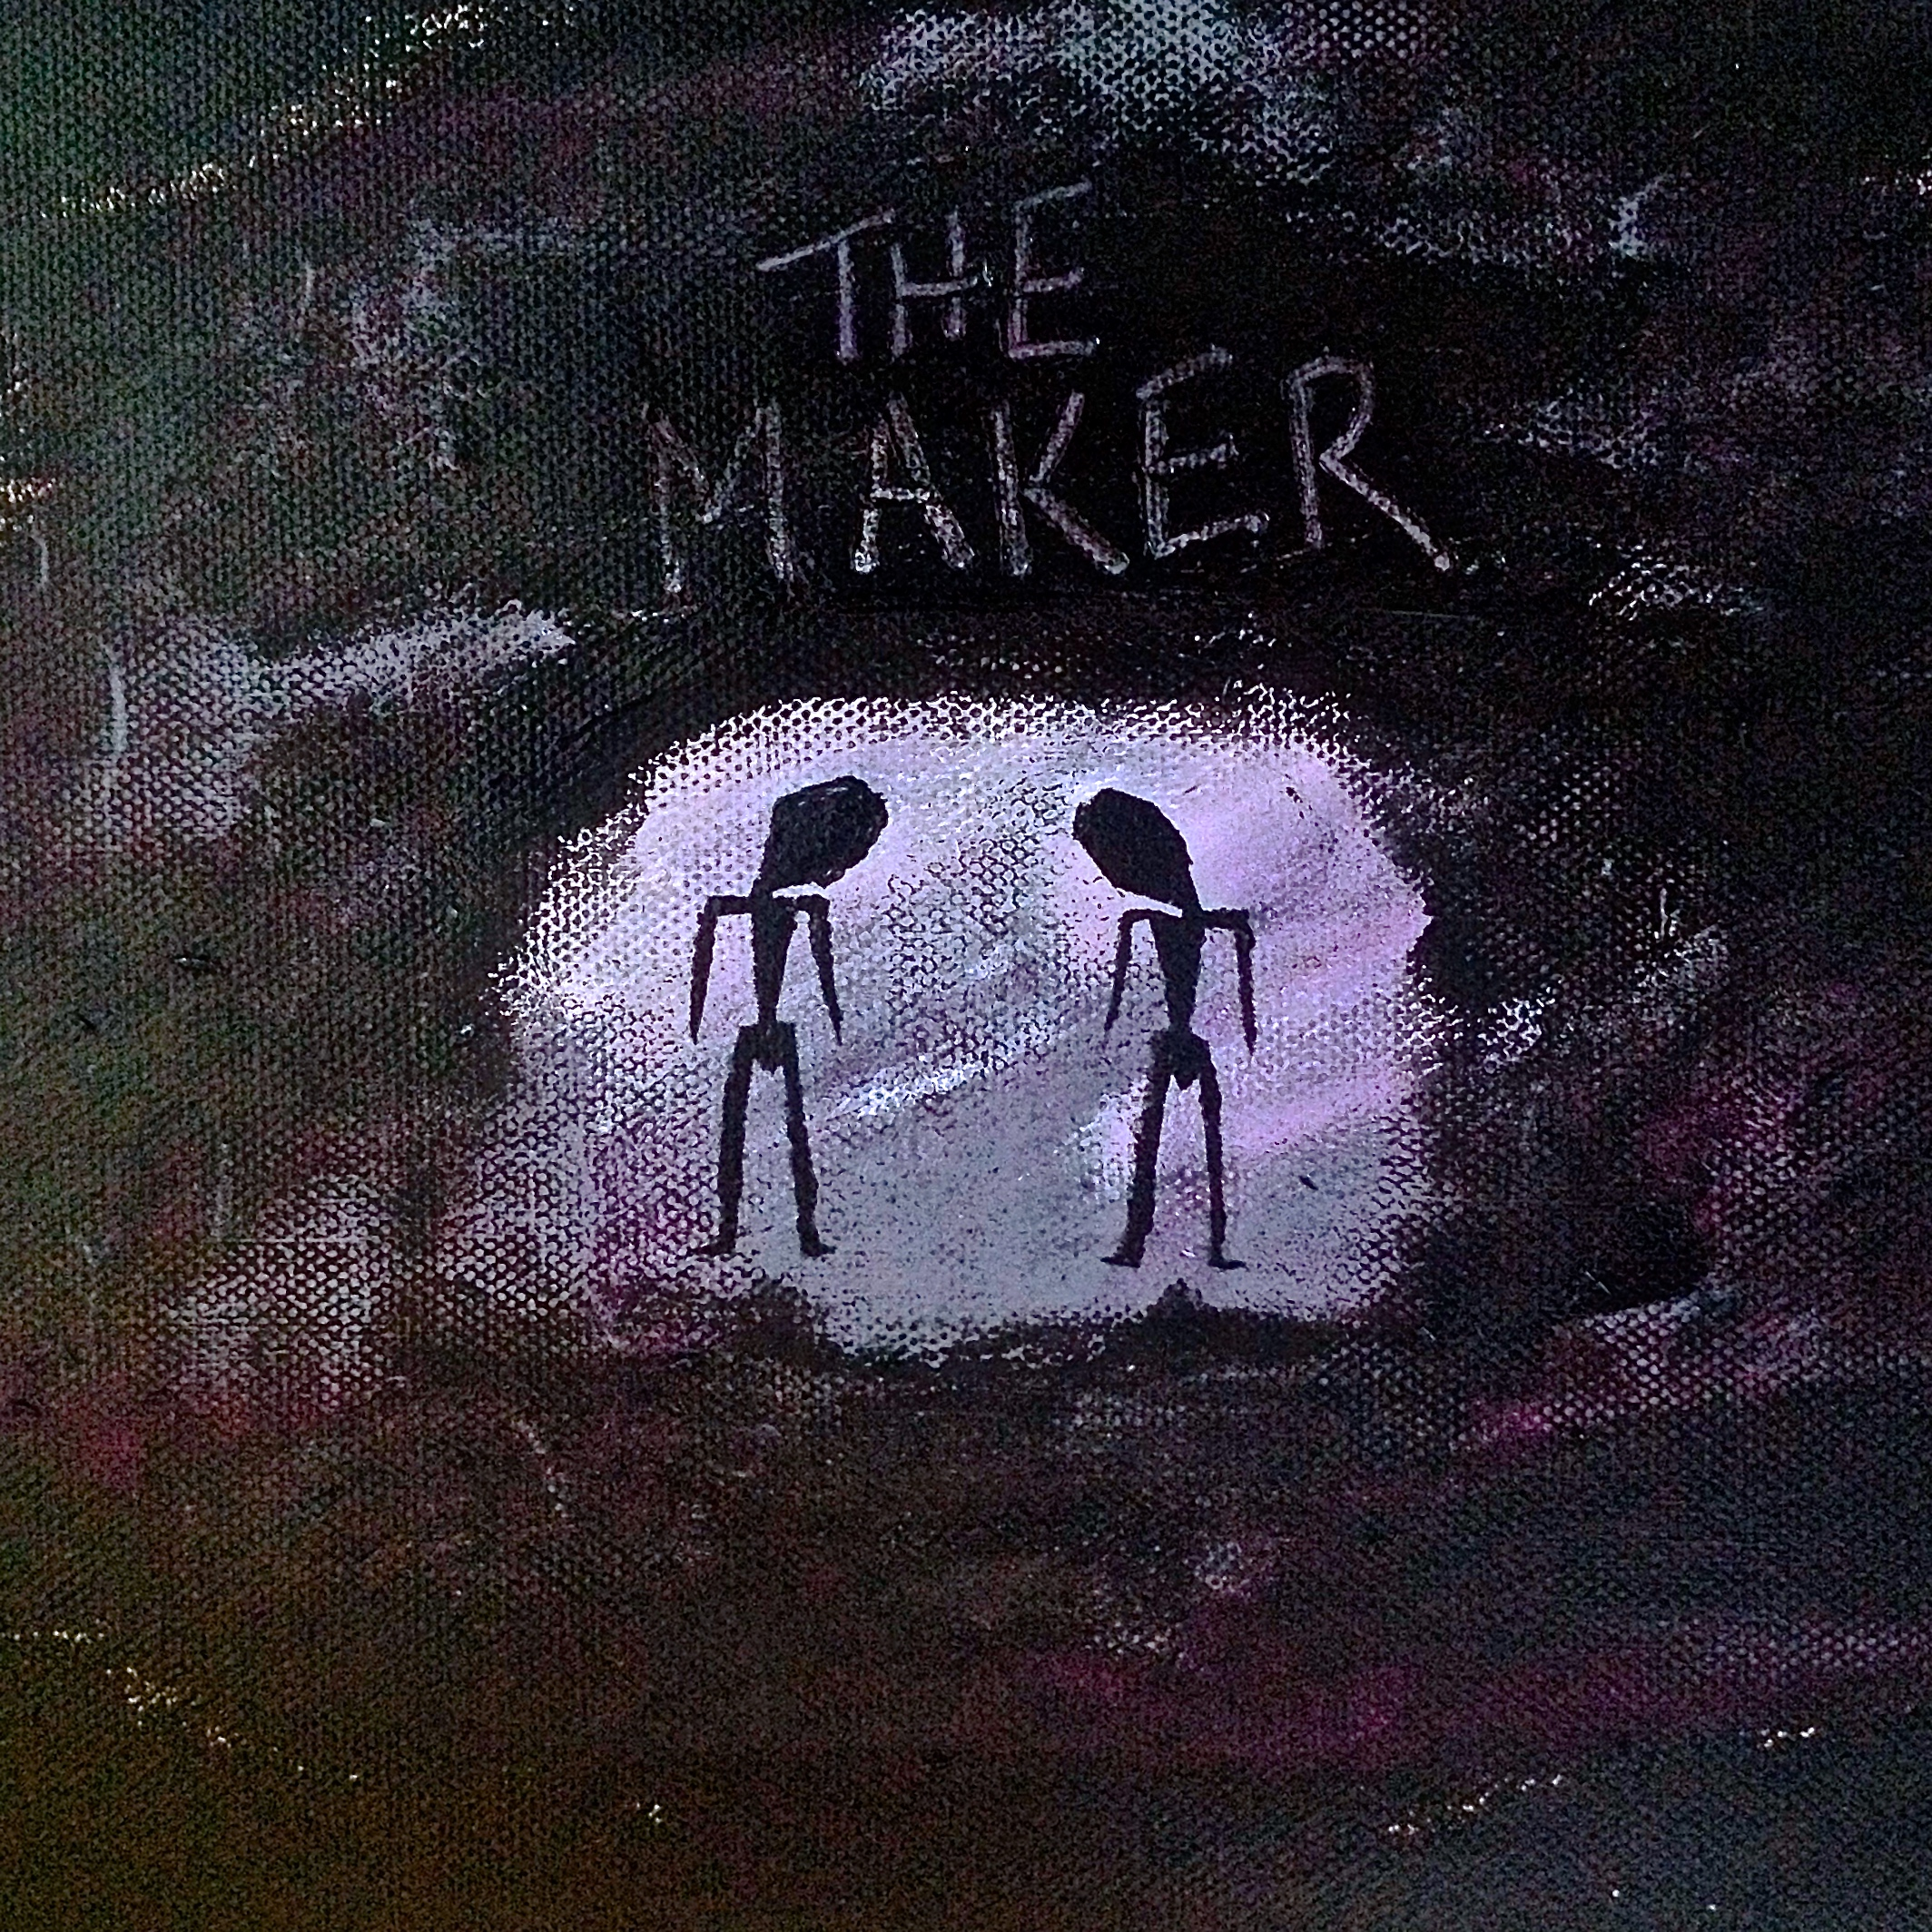 THE MAKER - Written as a collaboration between MINKY TRES-VAIN and the now-defunct YouTube channel 'MORPH BASS MAGIC', this short lived band released 'THE MAKER' as their debut single.